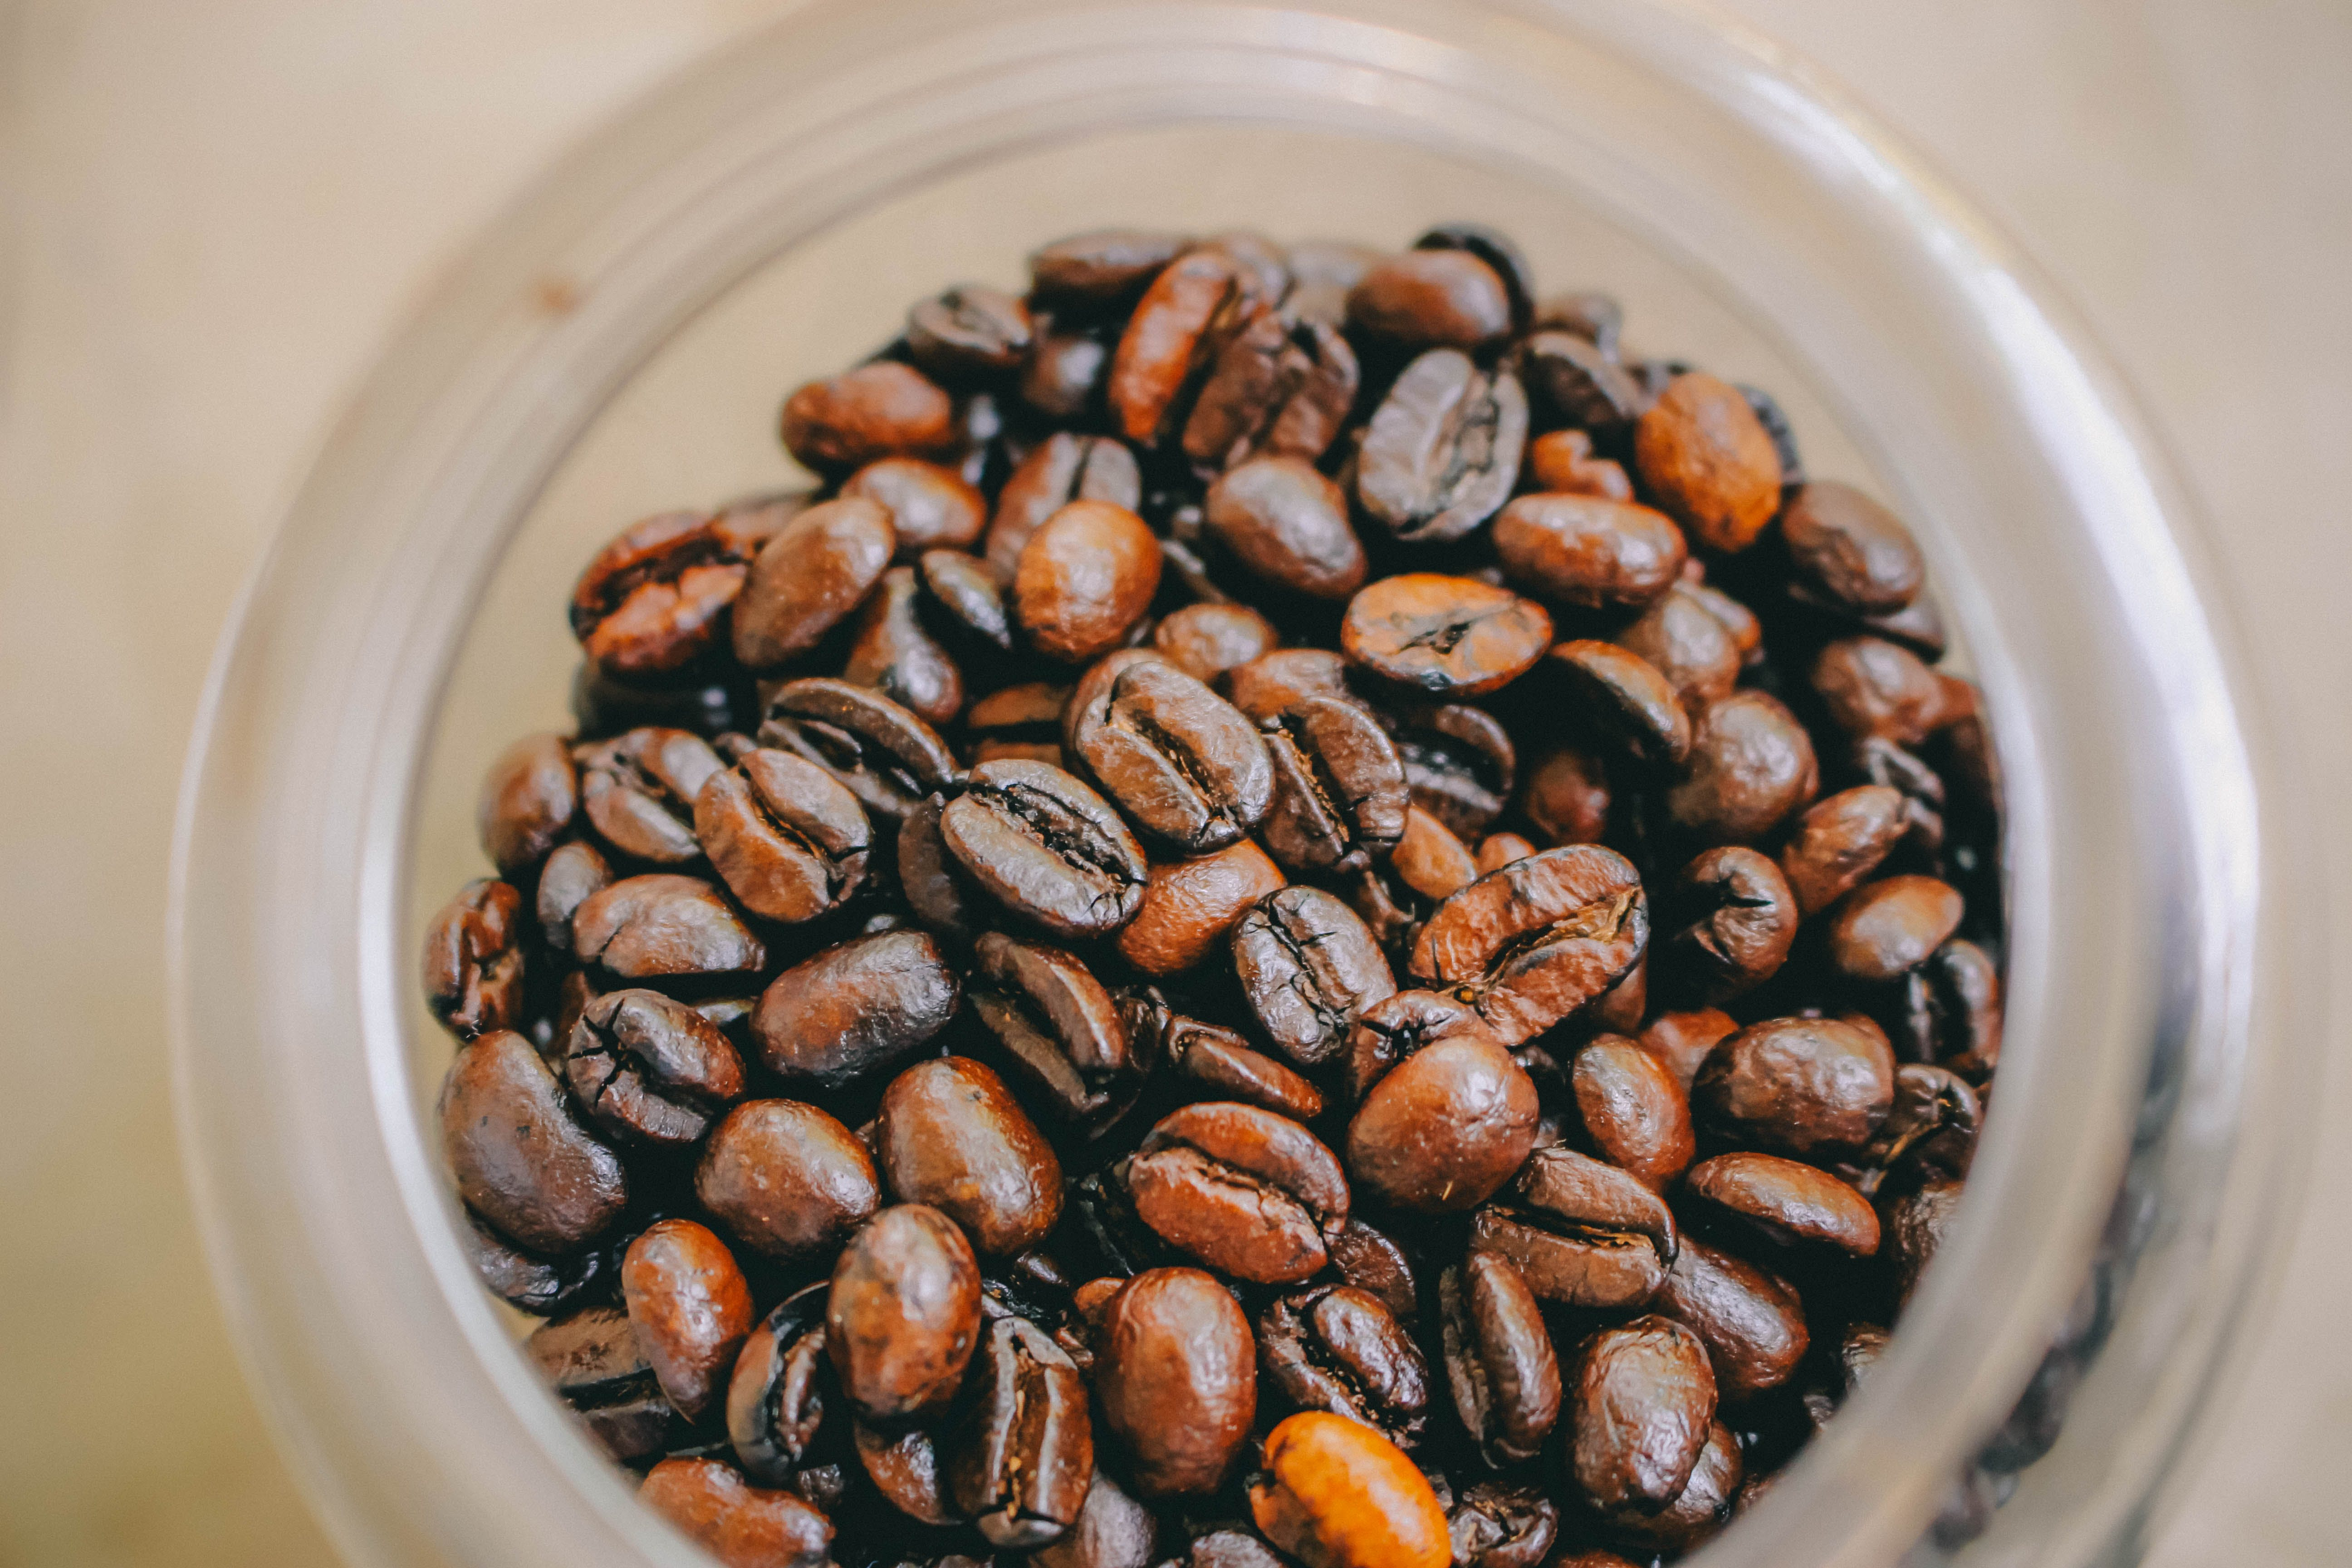 Photo of Brown Coffee Beans Inside Clear Glass Jar